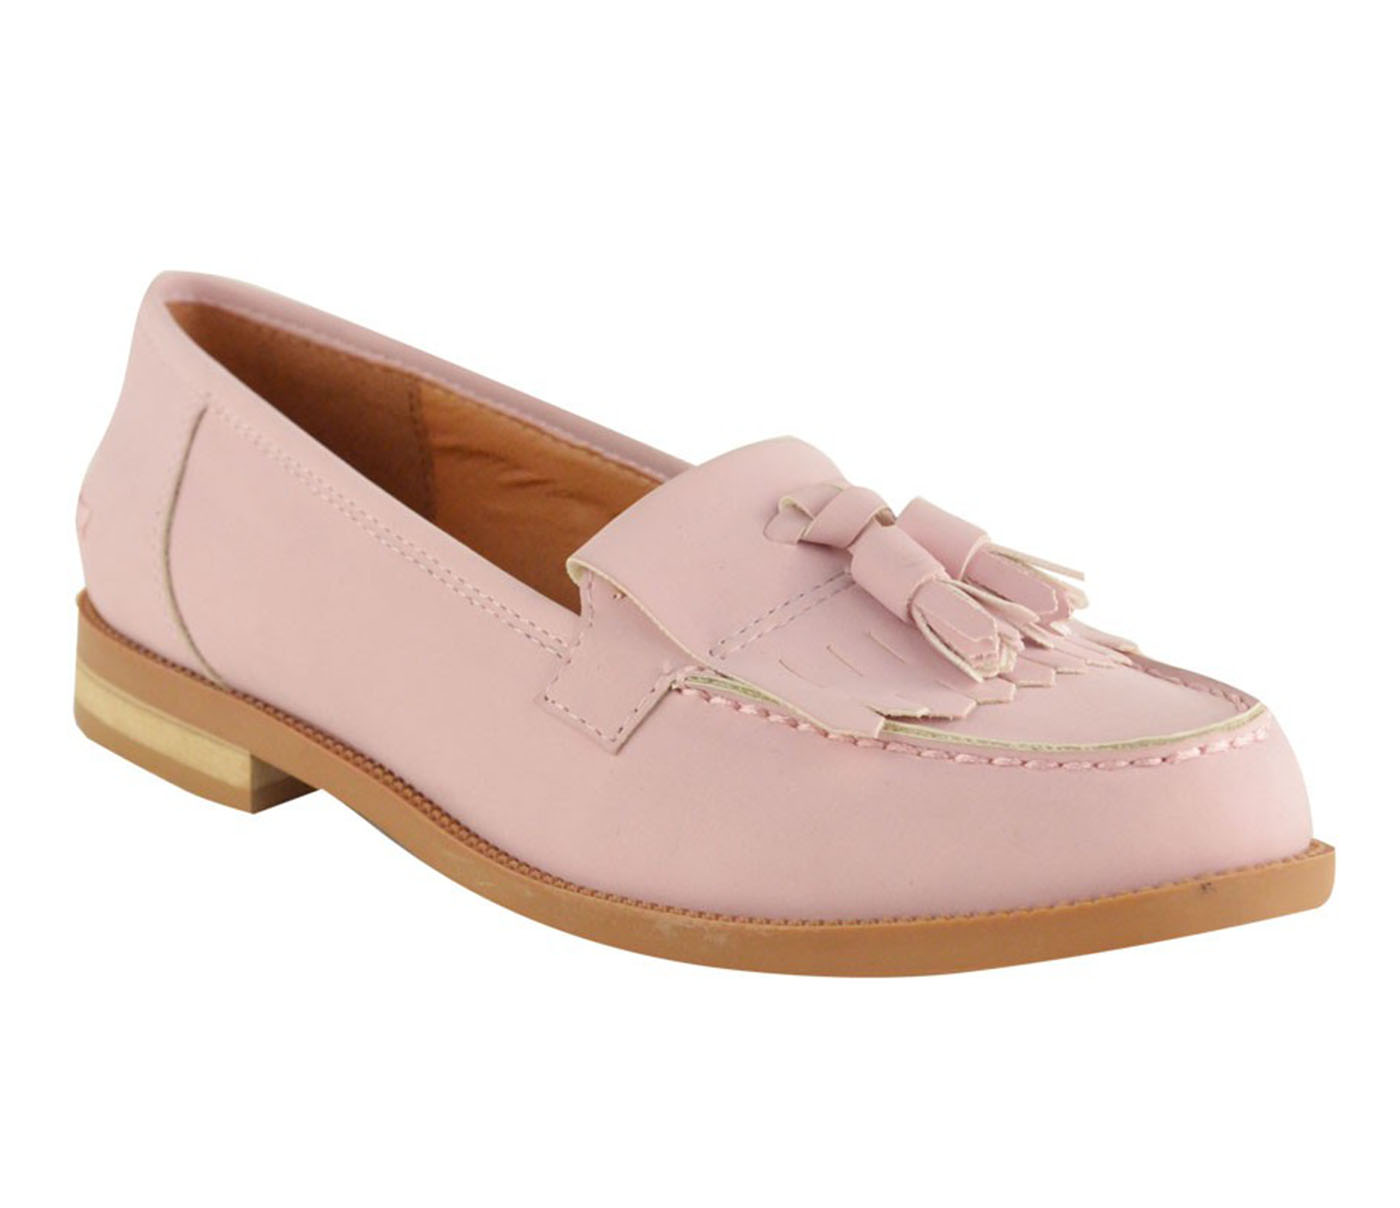 ladies women flat casual loafers borgues school office